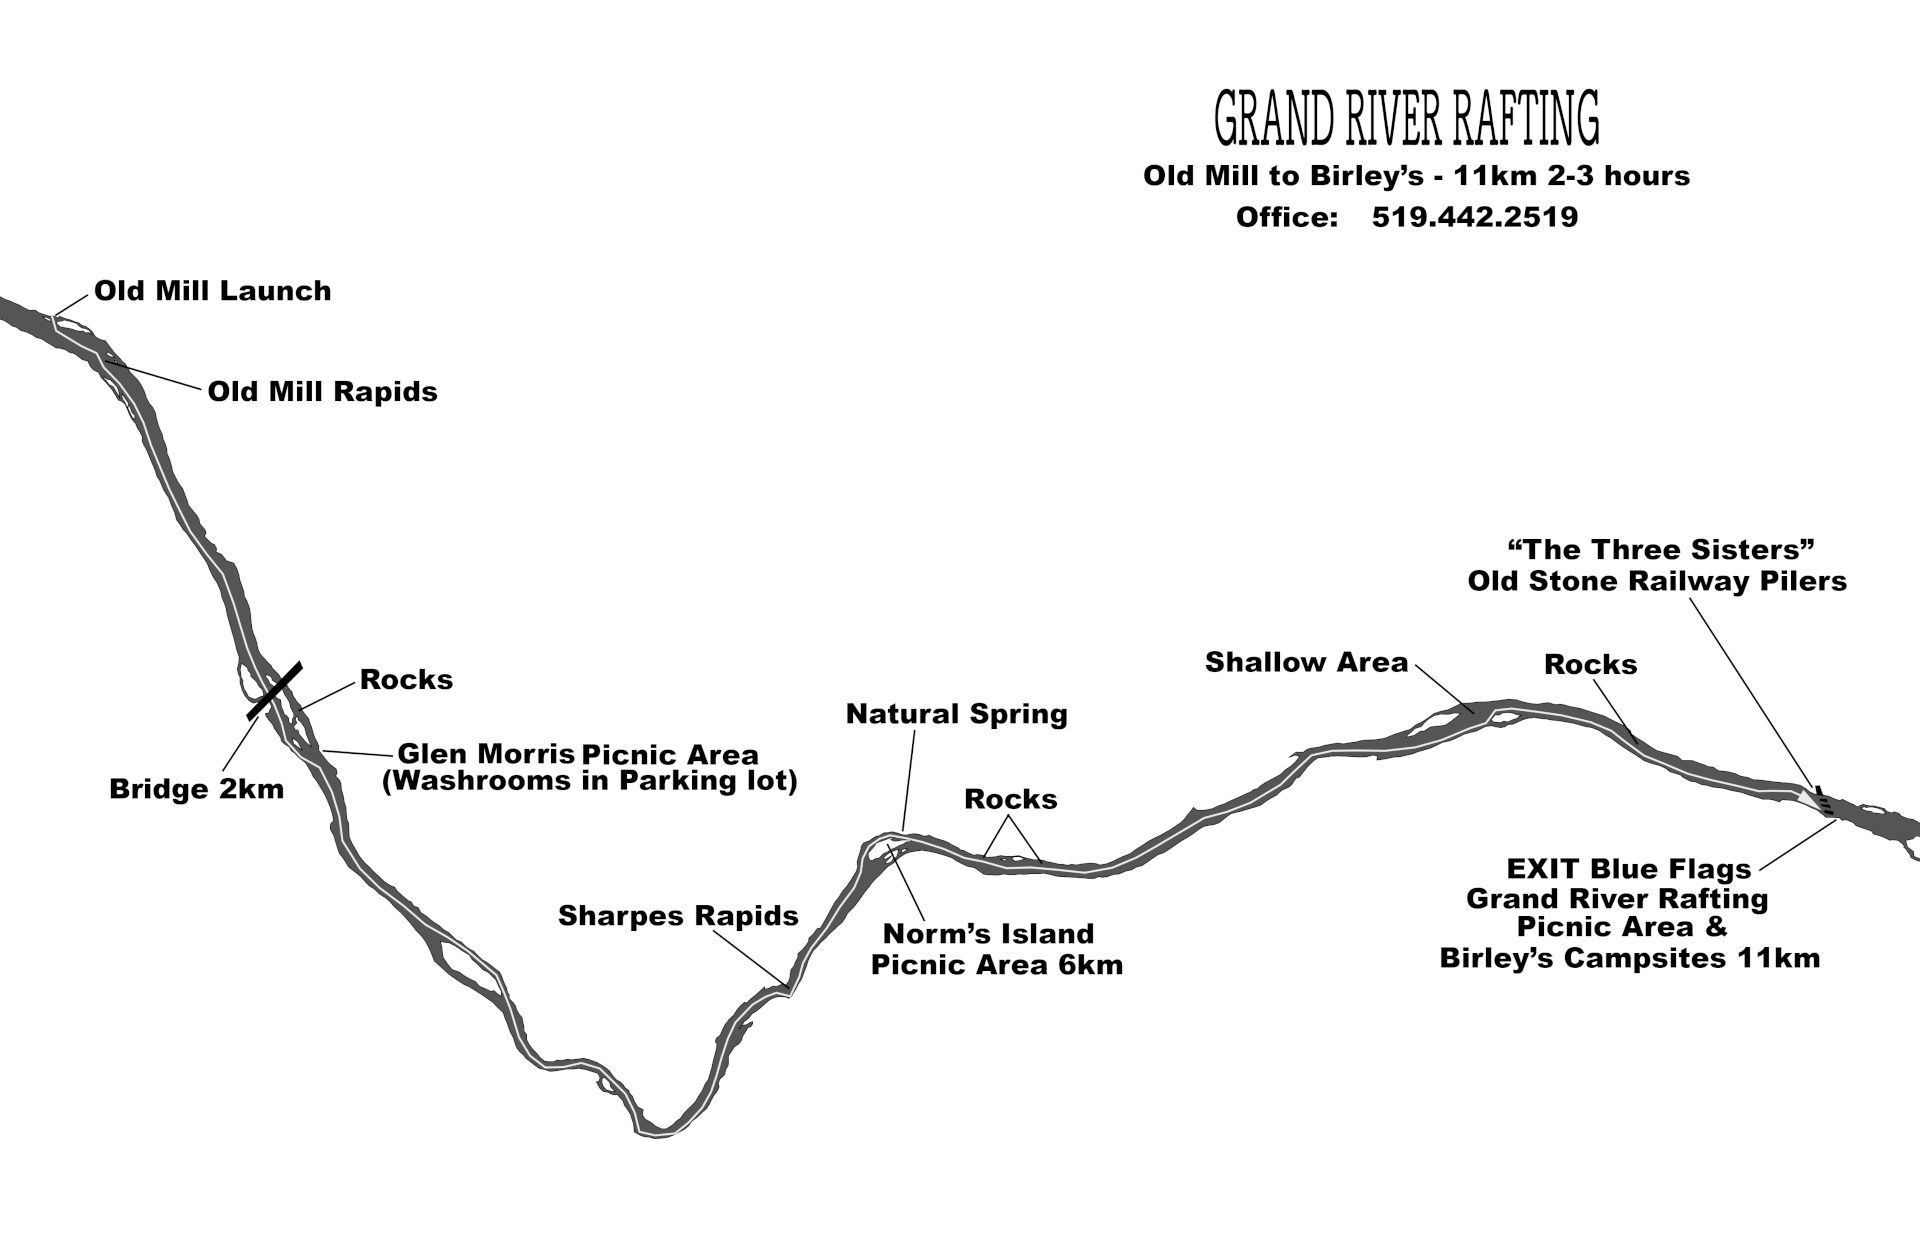 Grand River Rafting Trip Map of Old mill to Birleys